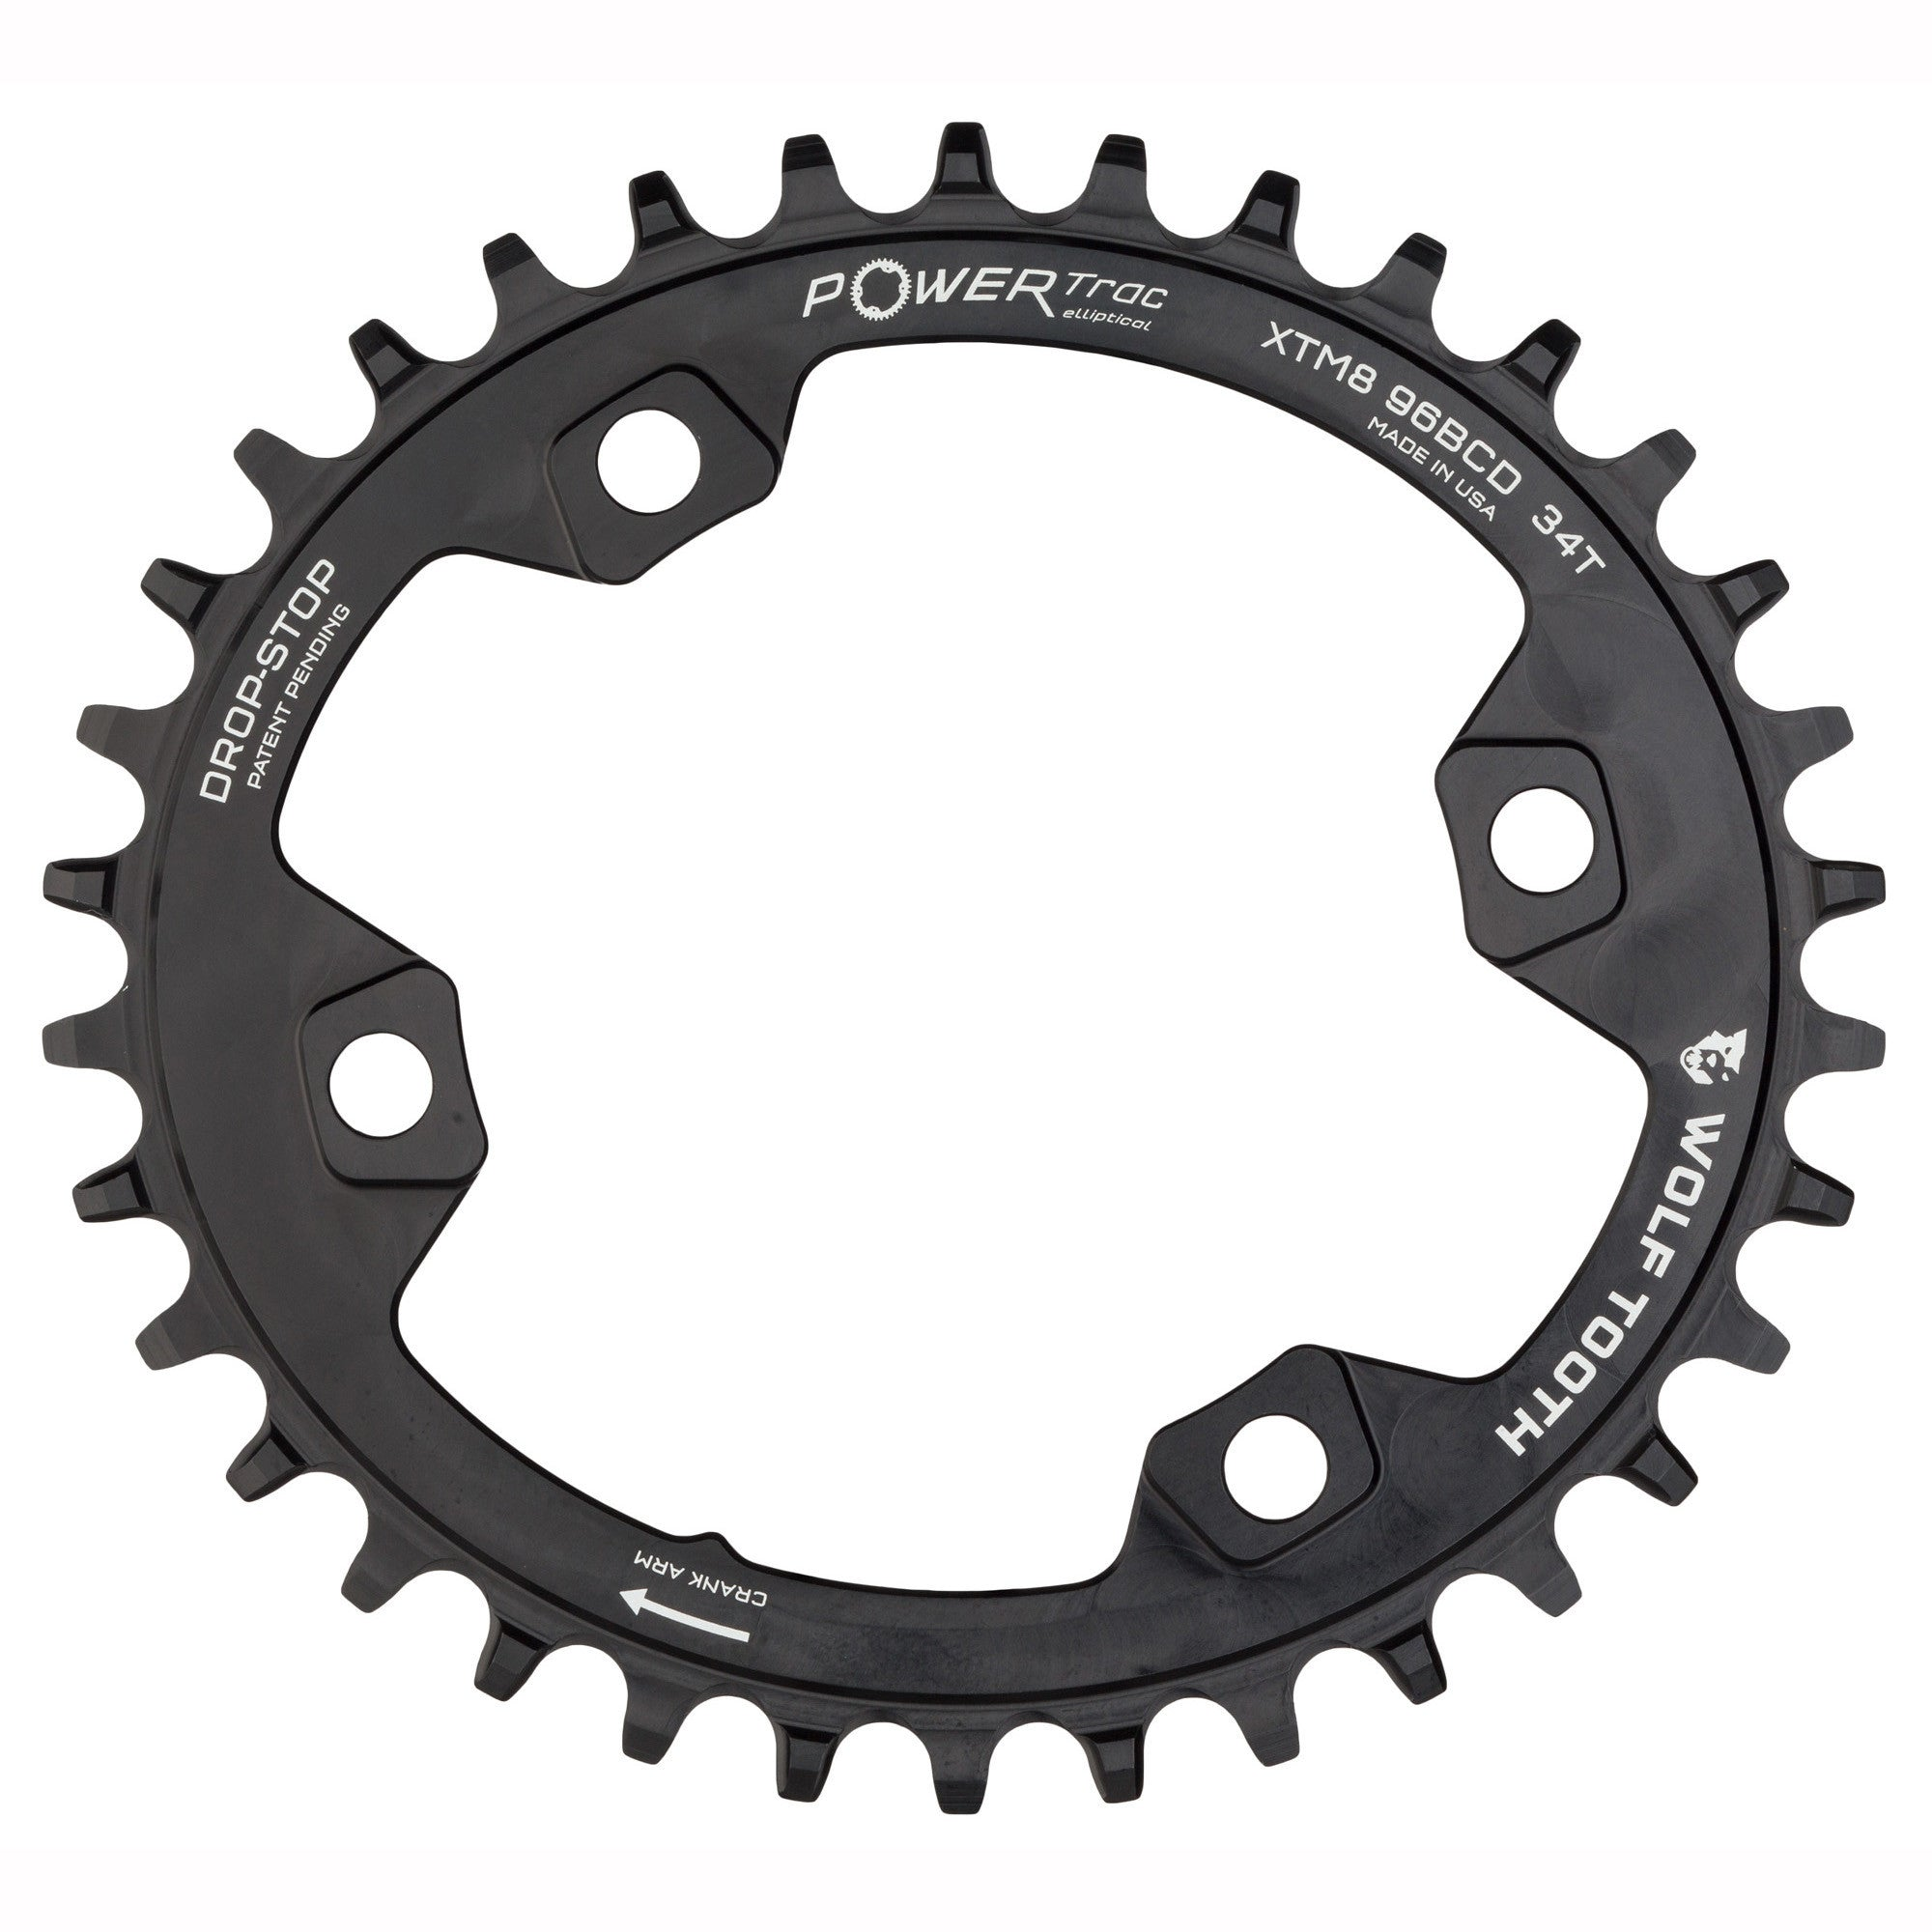 Wolf Tooth Components Drop-Stop Chainring 34T x 96 BCD for XTR M9000 Cranks